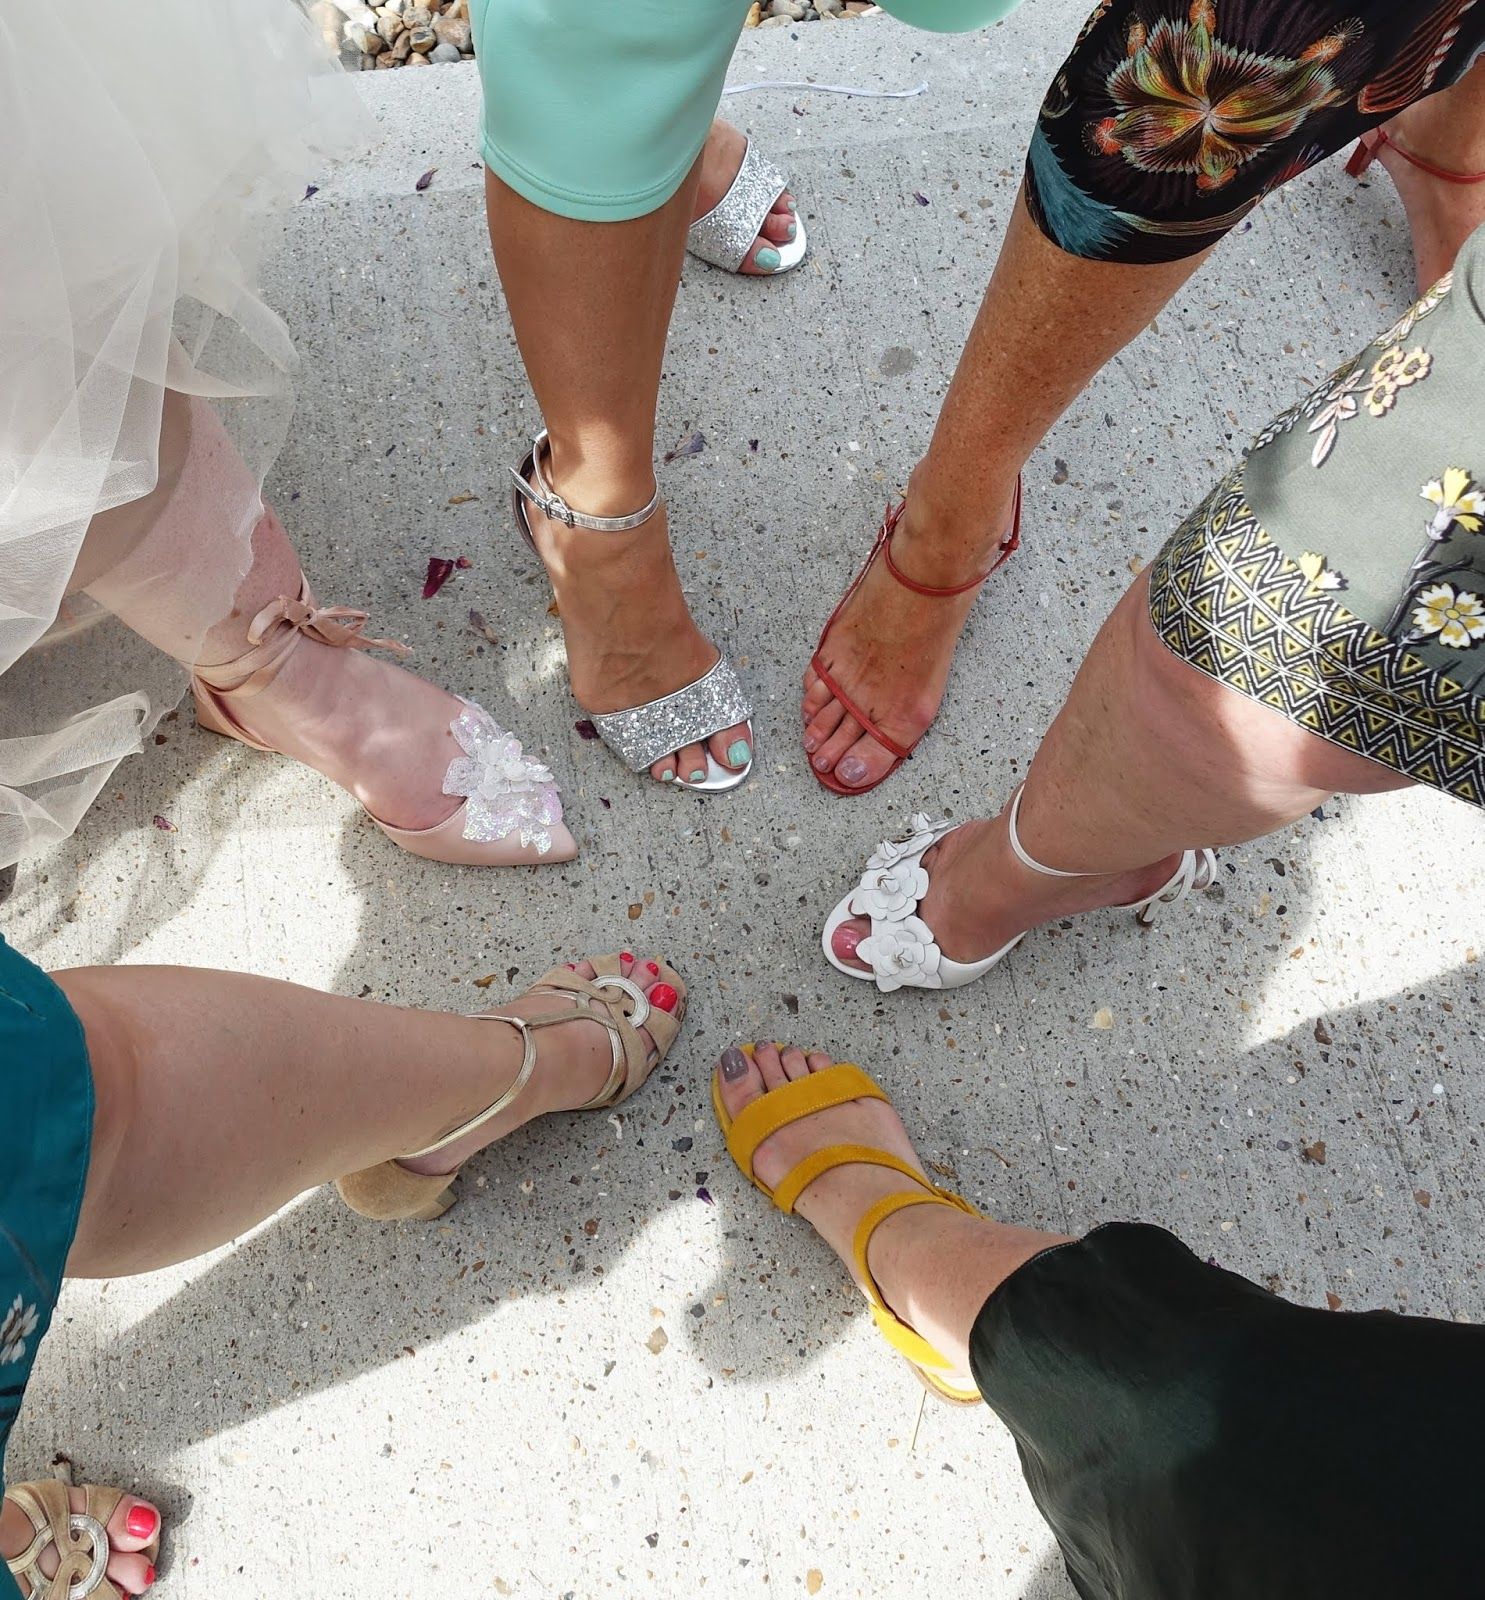 Some of the sandals and shoes worn by wedding guests at an English seaside wedding, August 2018